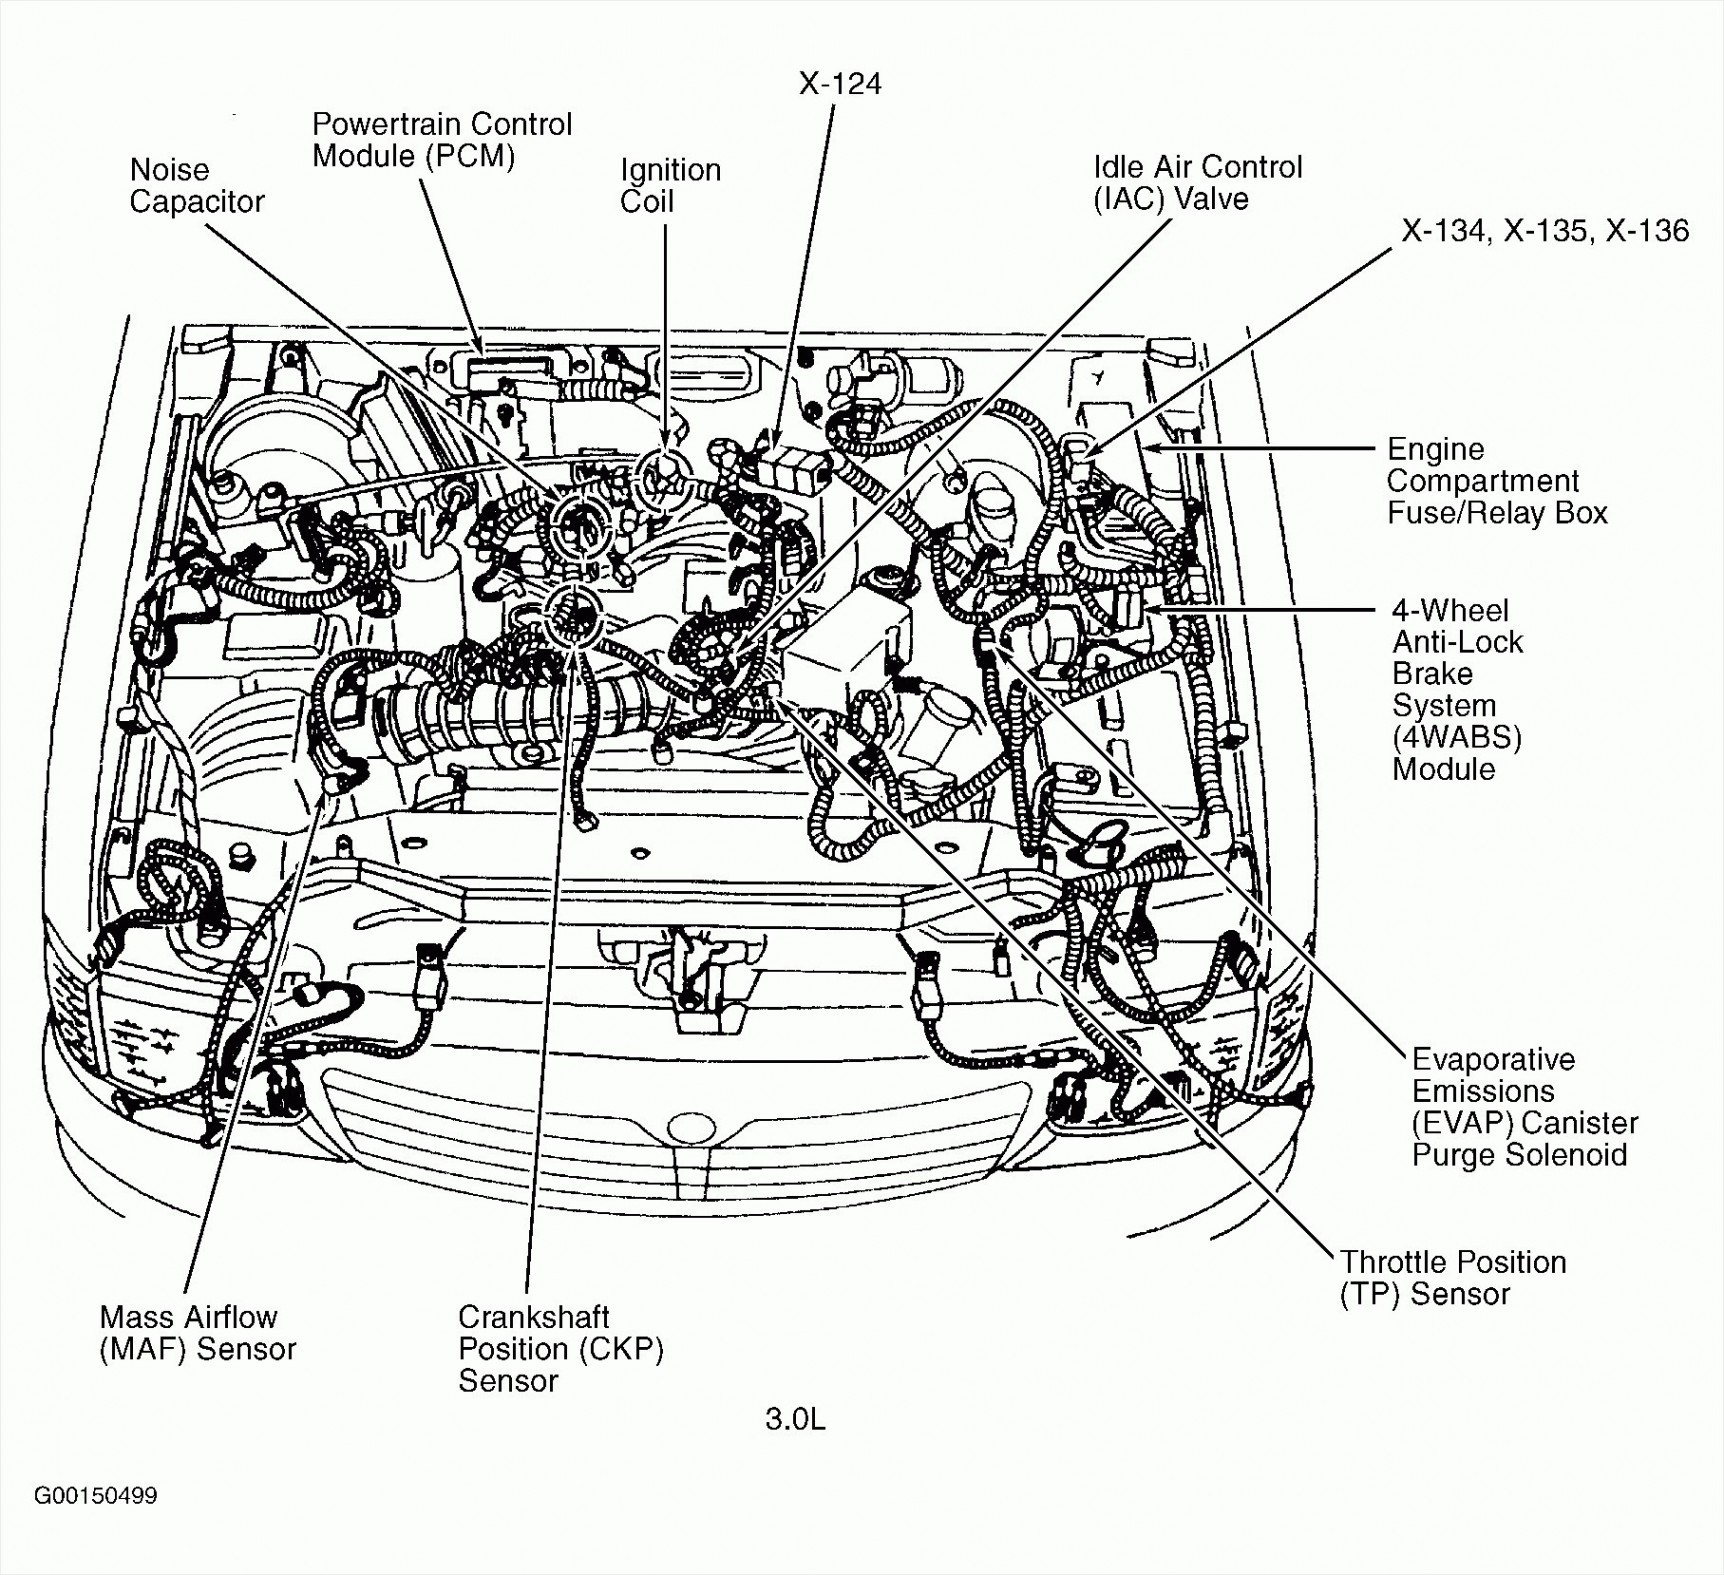 1997 avenger engine diagram guide about wiring diagram 1996 dodge avenger engine diagram [ 1724 x 1575 Pixel ]